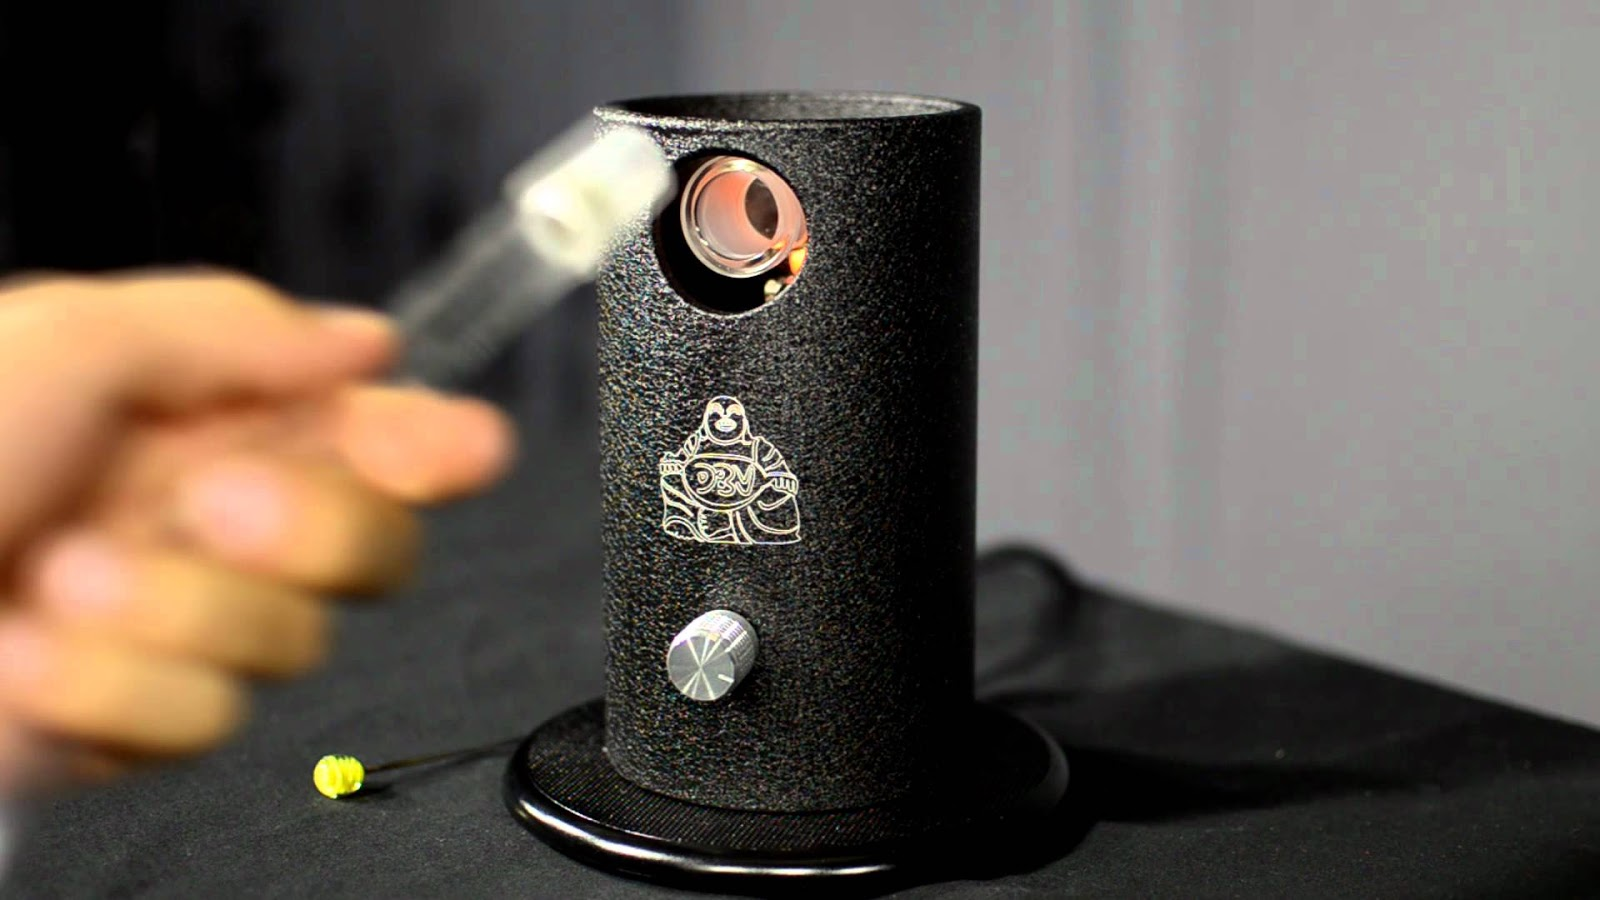 Da Buddha Vaporizer Review Reasonable & Best For At-Home Sessions